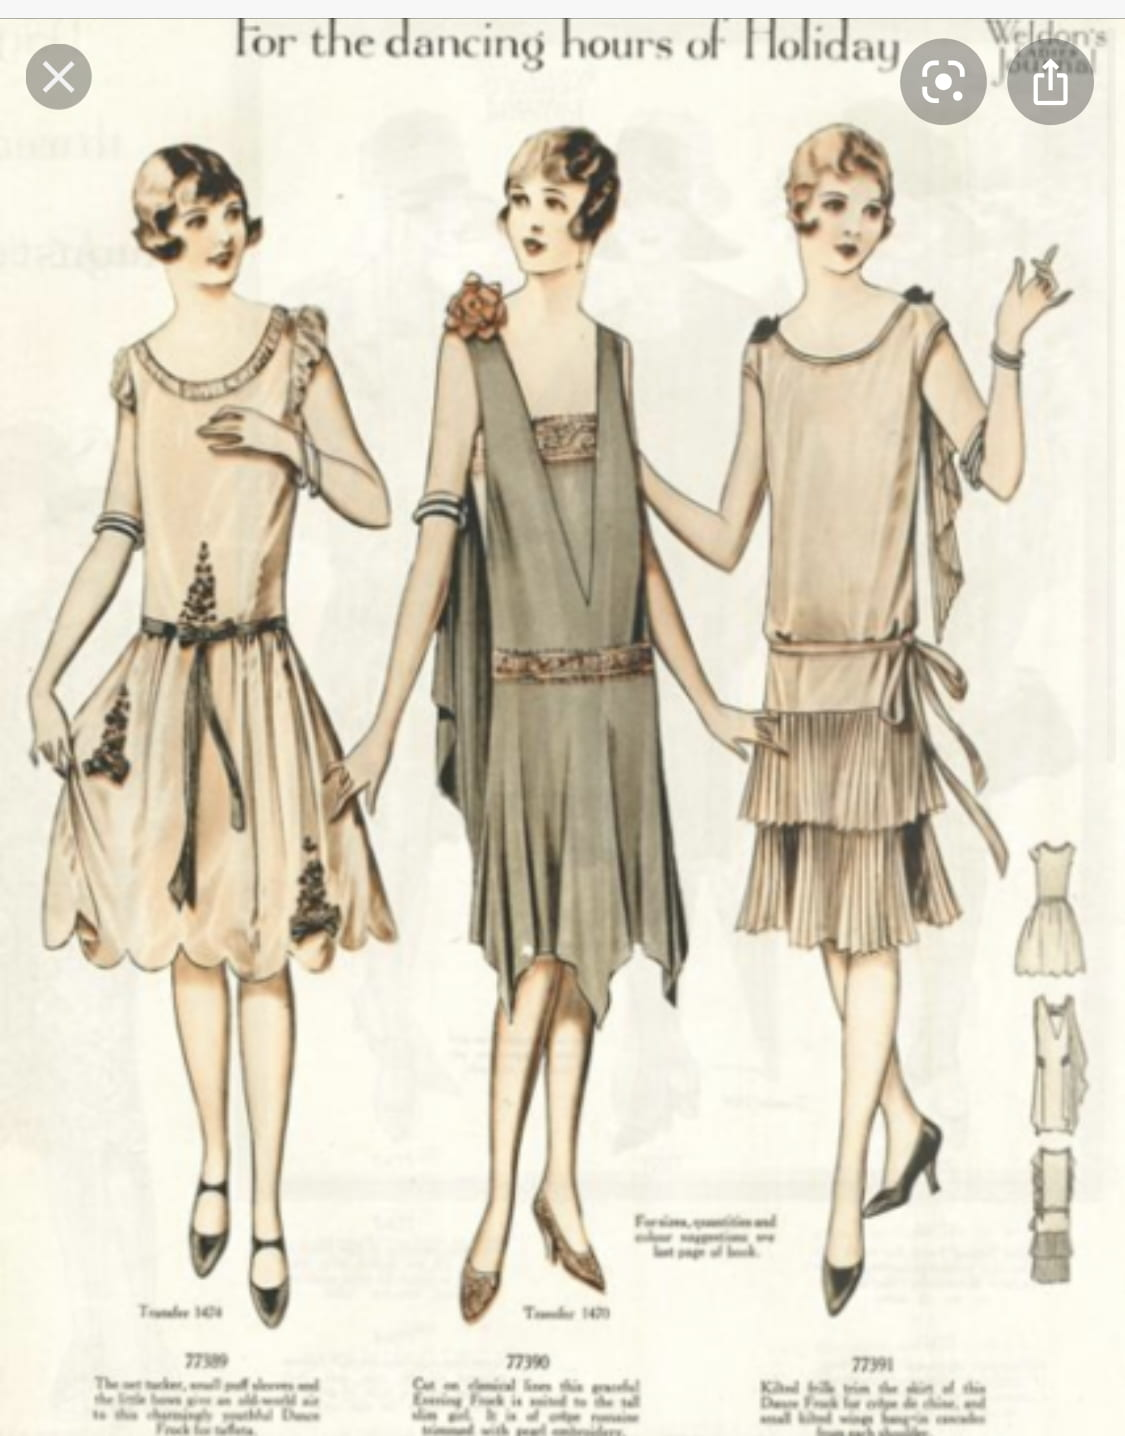 Fashion After 1900 – Image research #2